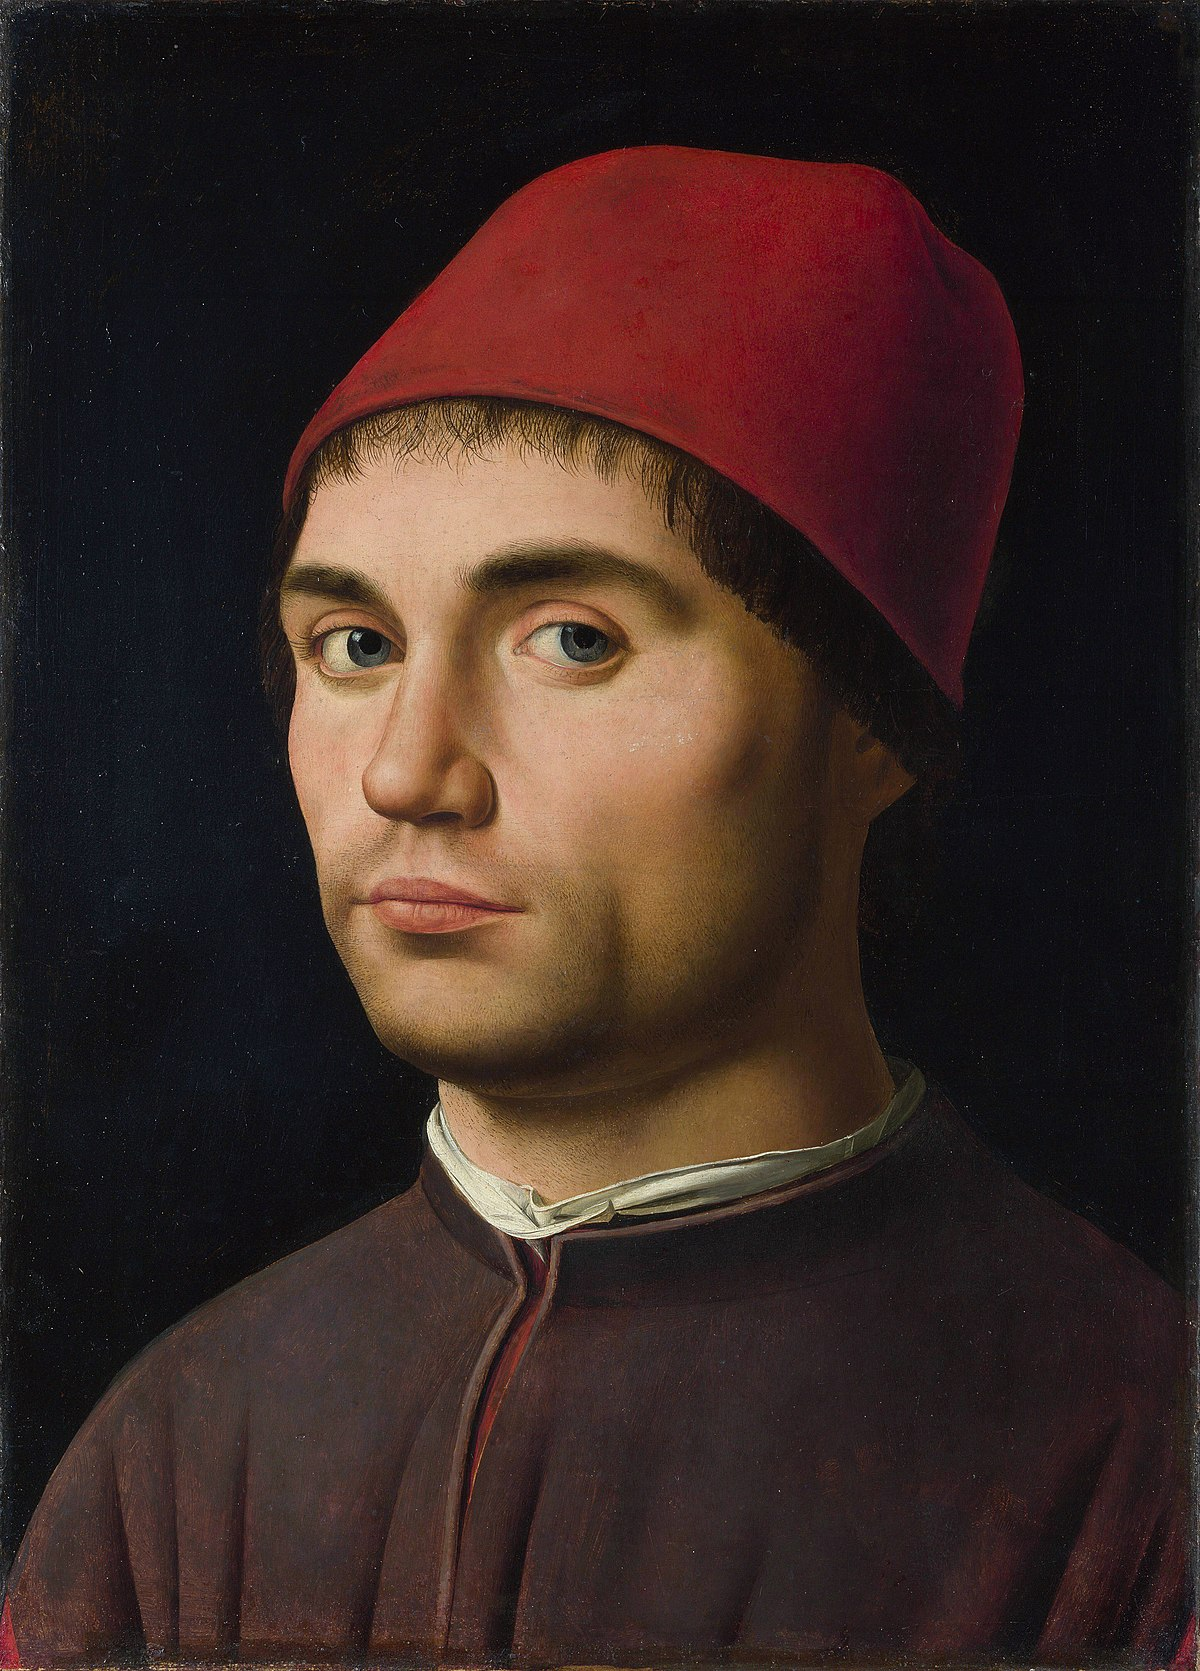 Antonello da Messina - Wikipedia